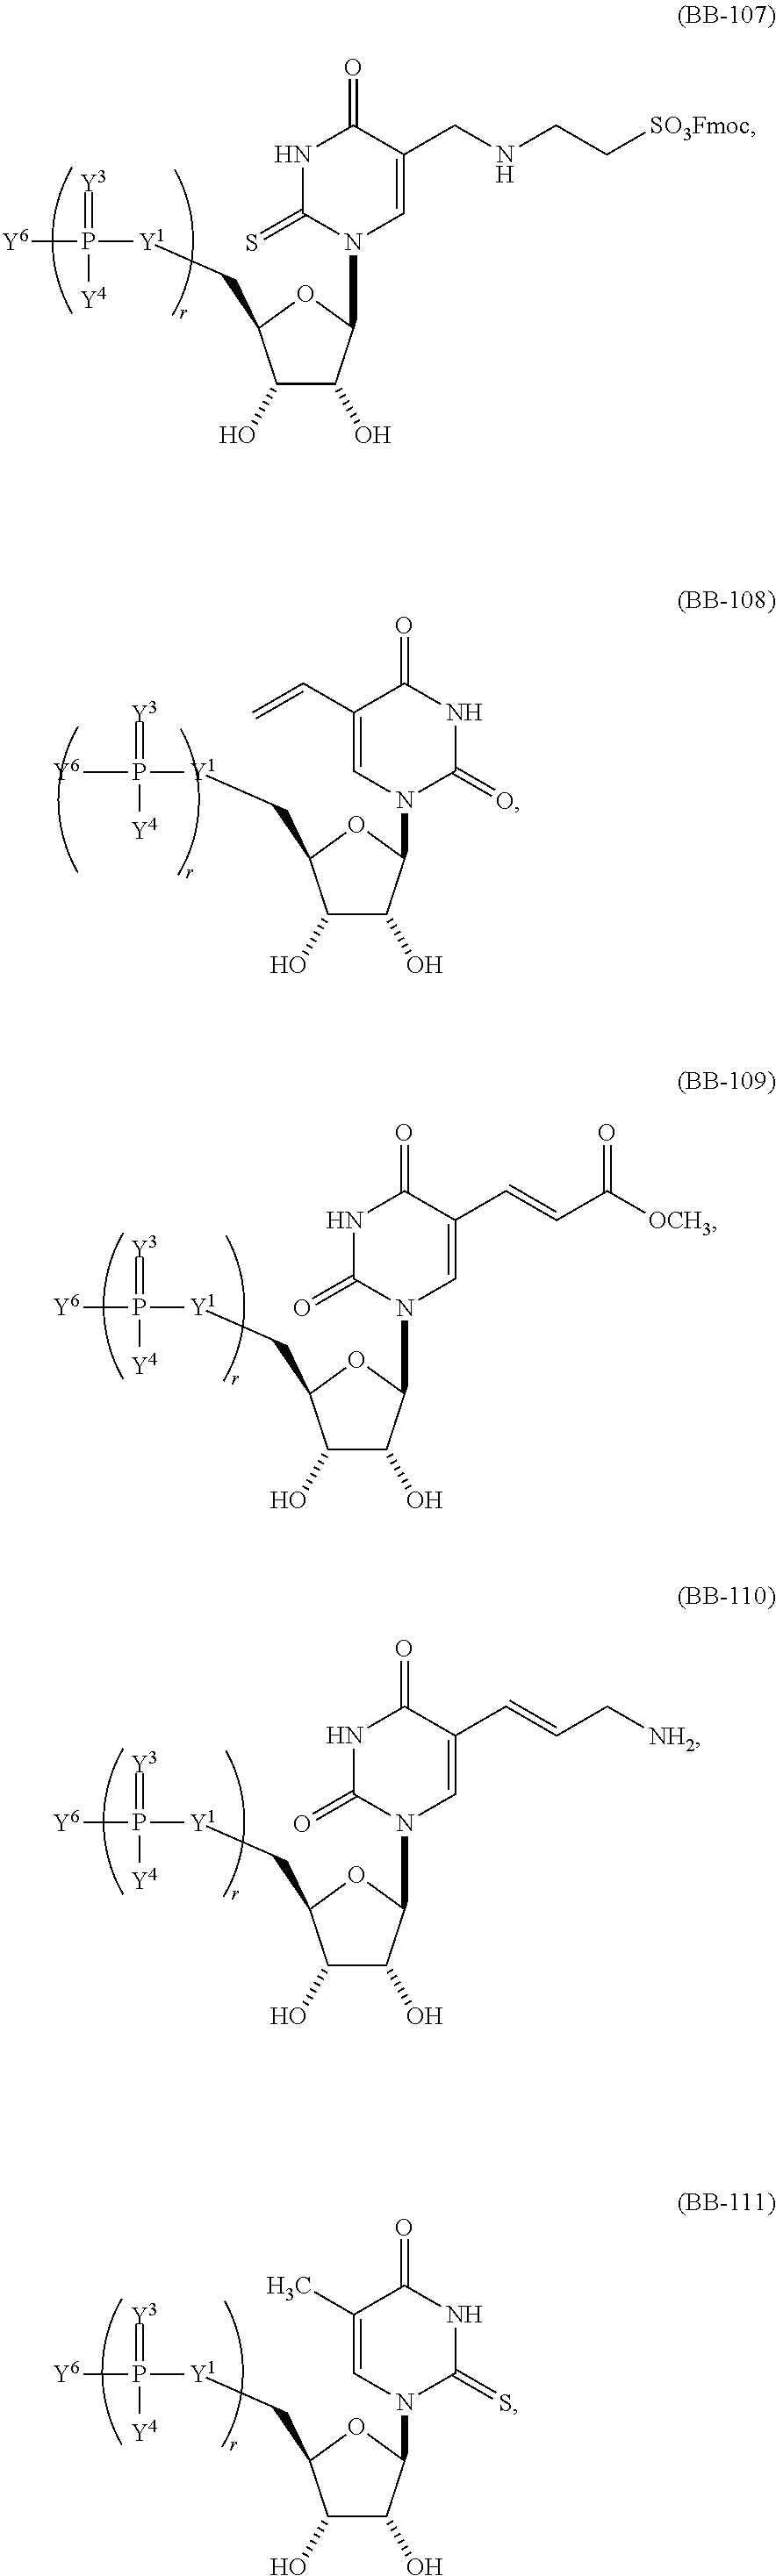 hight resolution of us9220755b2 modified polynucleotides for the production of proteins associated with blood and lymphatic disorders google patents